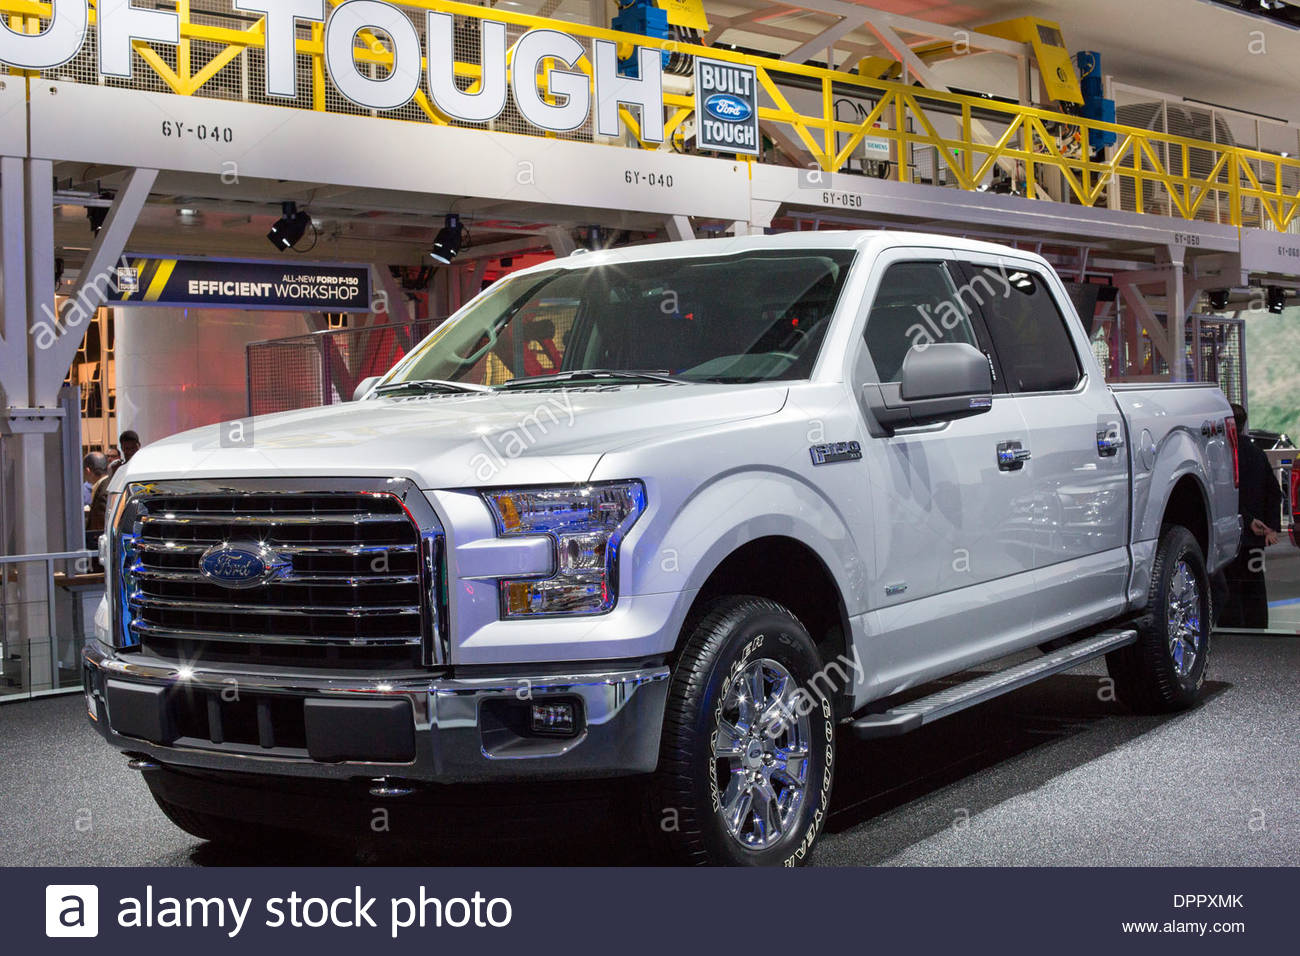 Detroit michigan the ford f 150 4x4 pickup truck on display at the